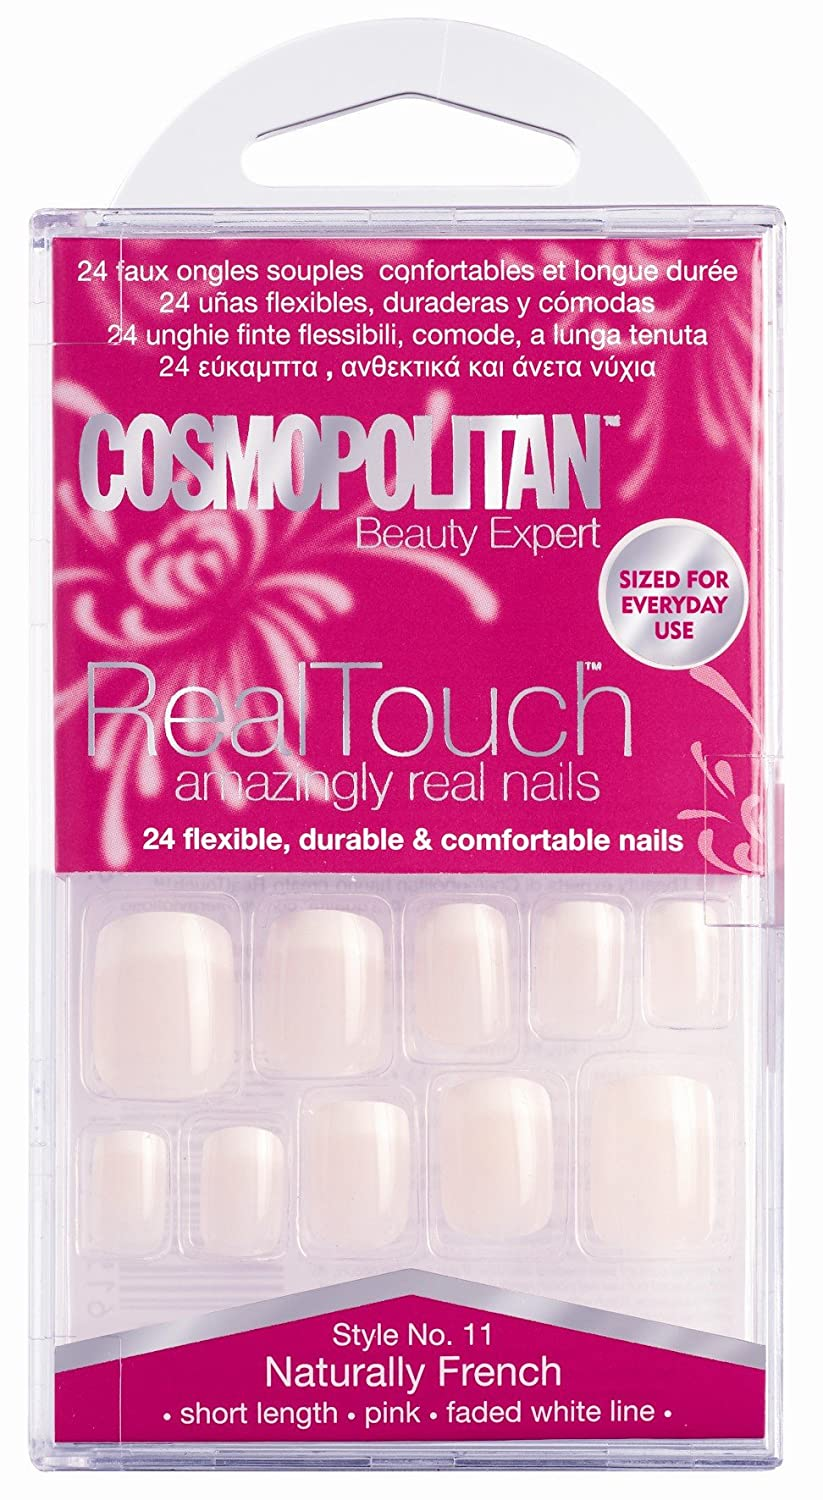 Cosmopolitan Real Touch Amazingly Real Nails Naturally French Style 11 Hampton Brands Ltd COS2011